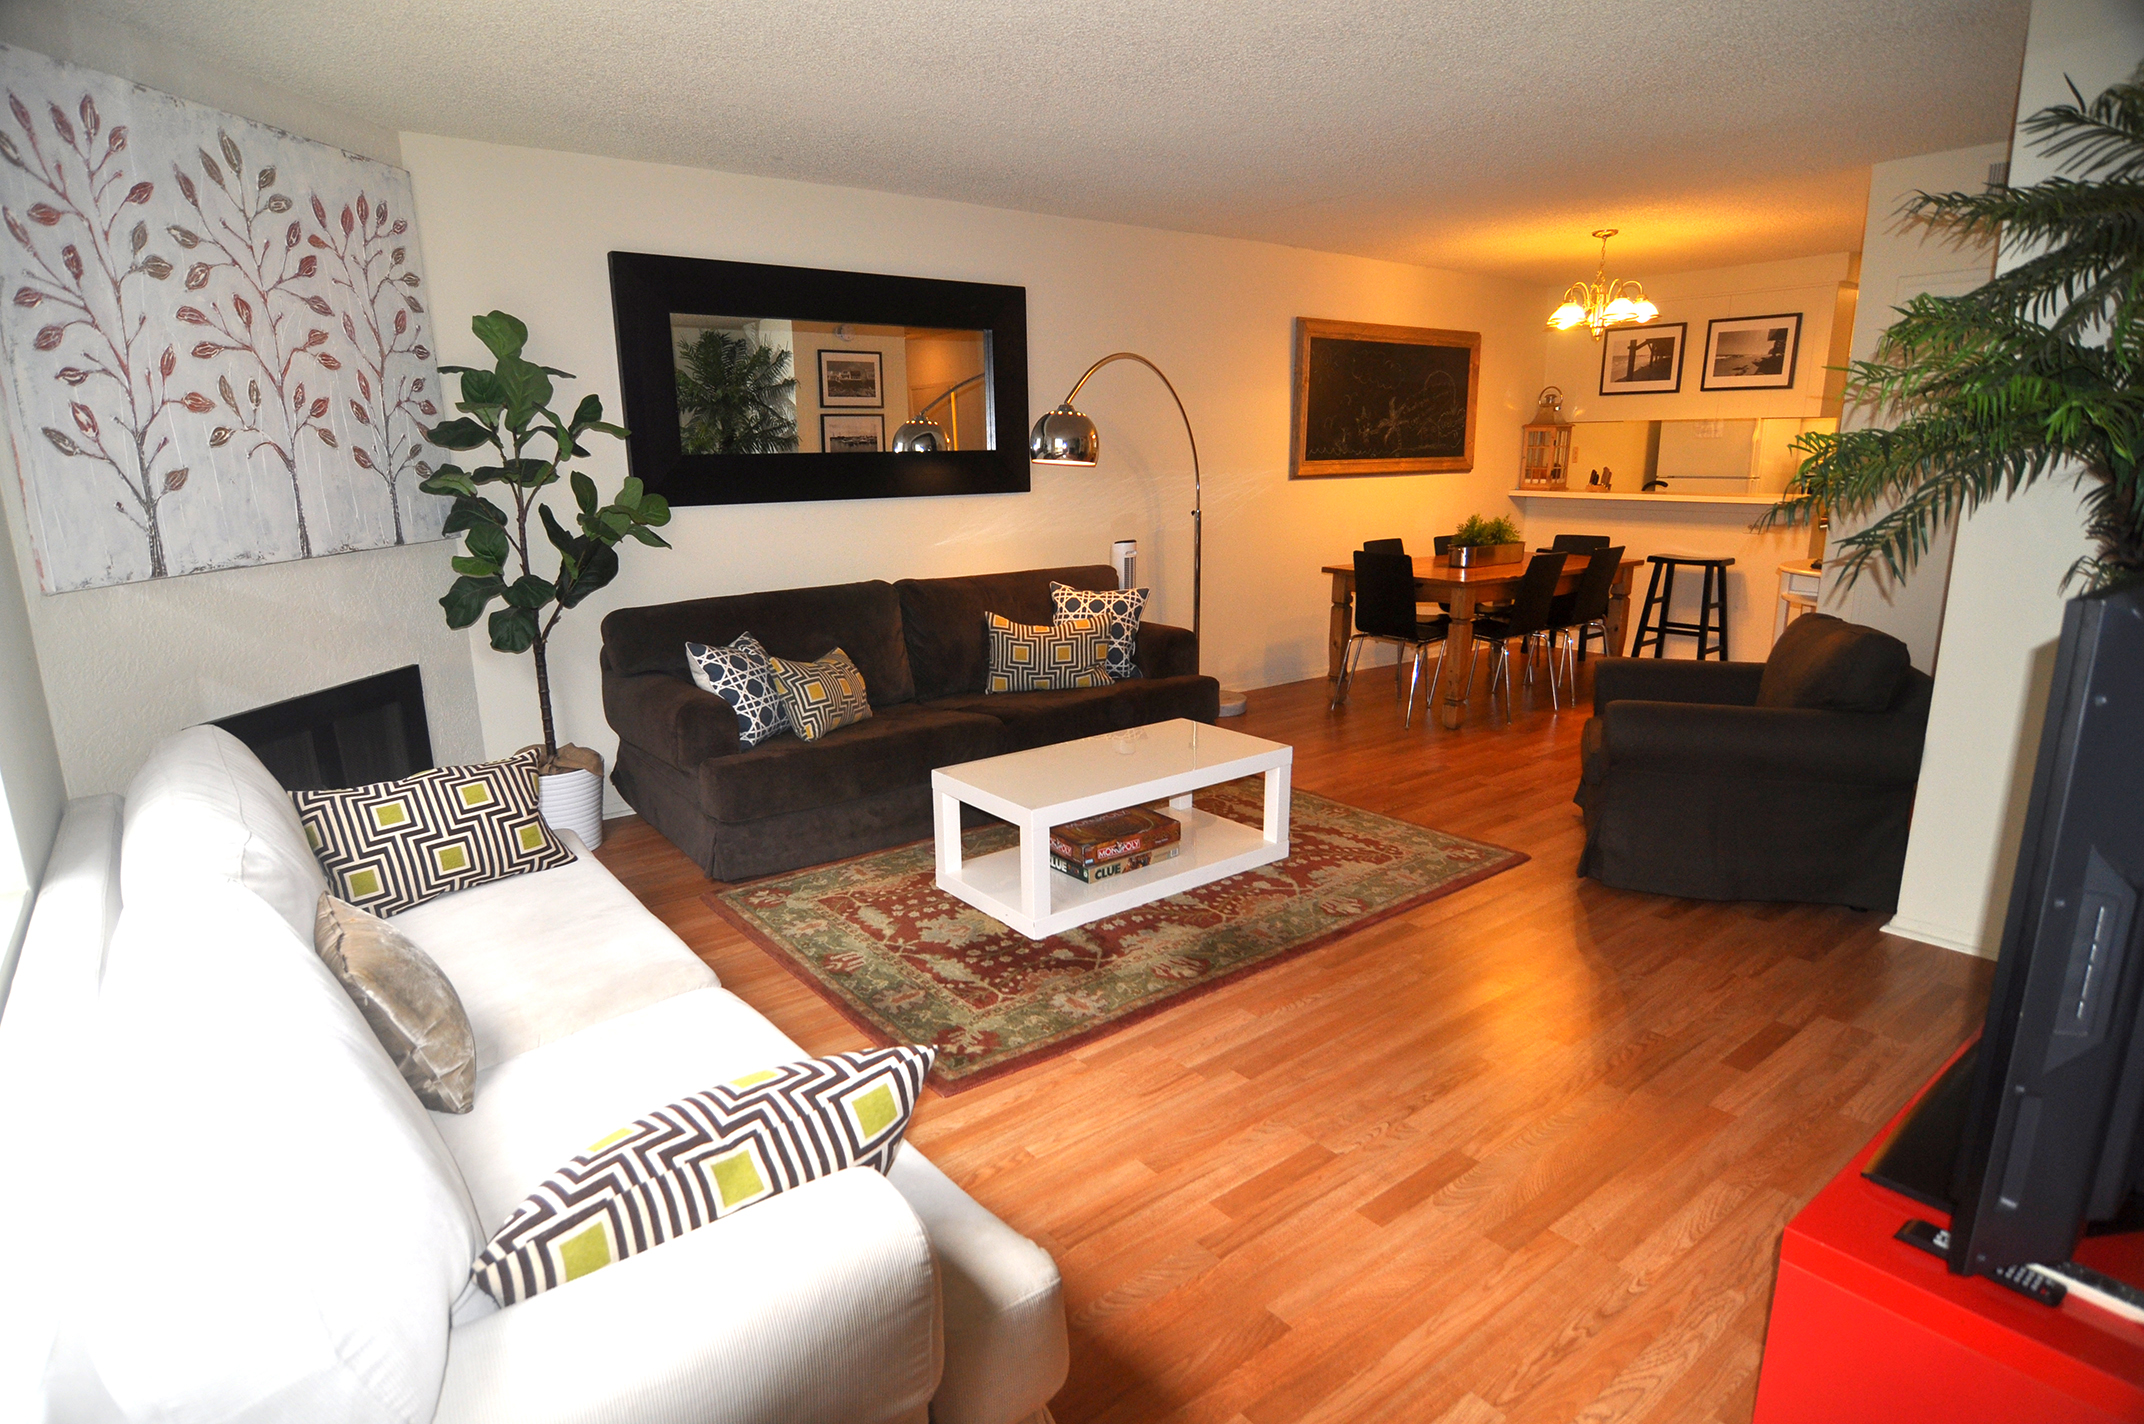 LOCATION!! Spacious 3bd+2.5ba Townhouse, Walk to Pier